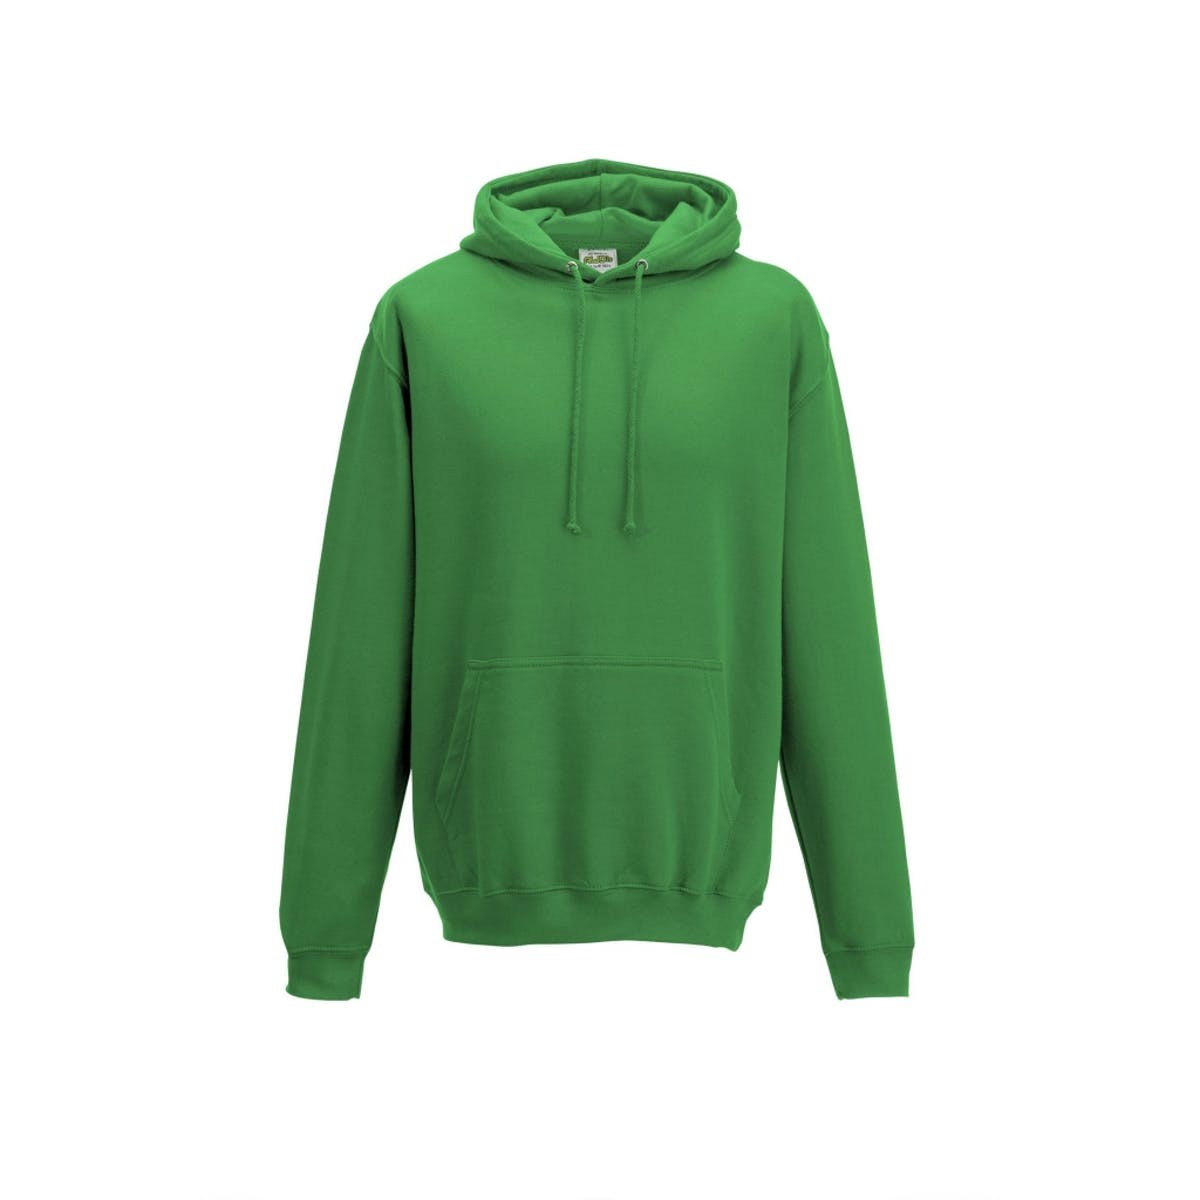 kelly green college hoodies